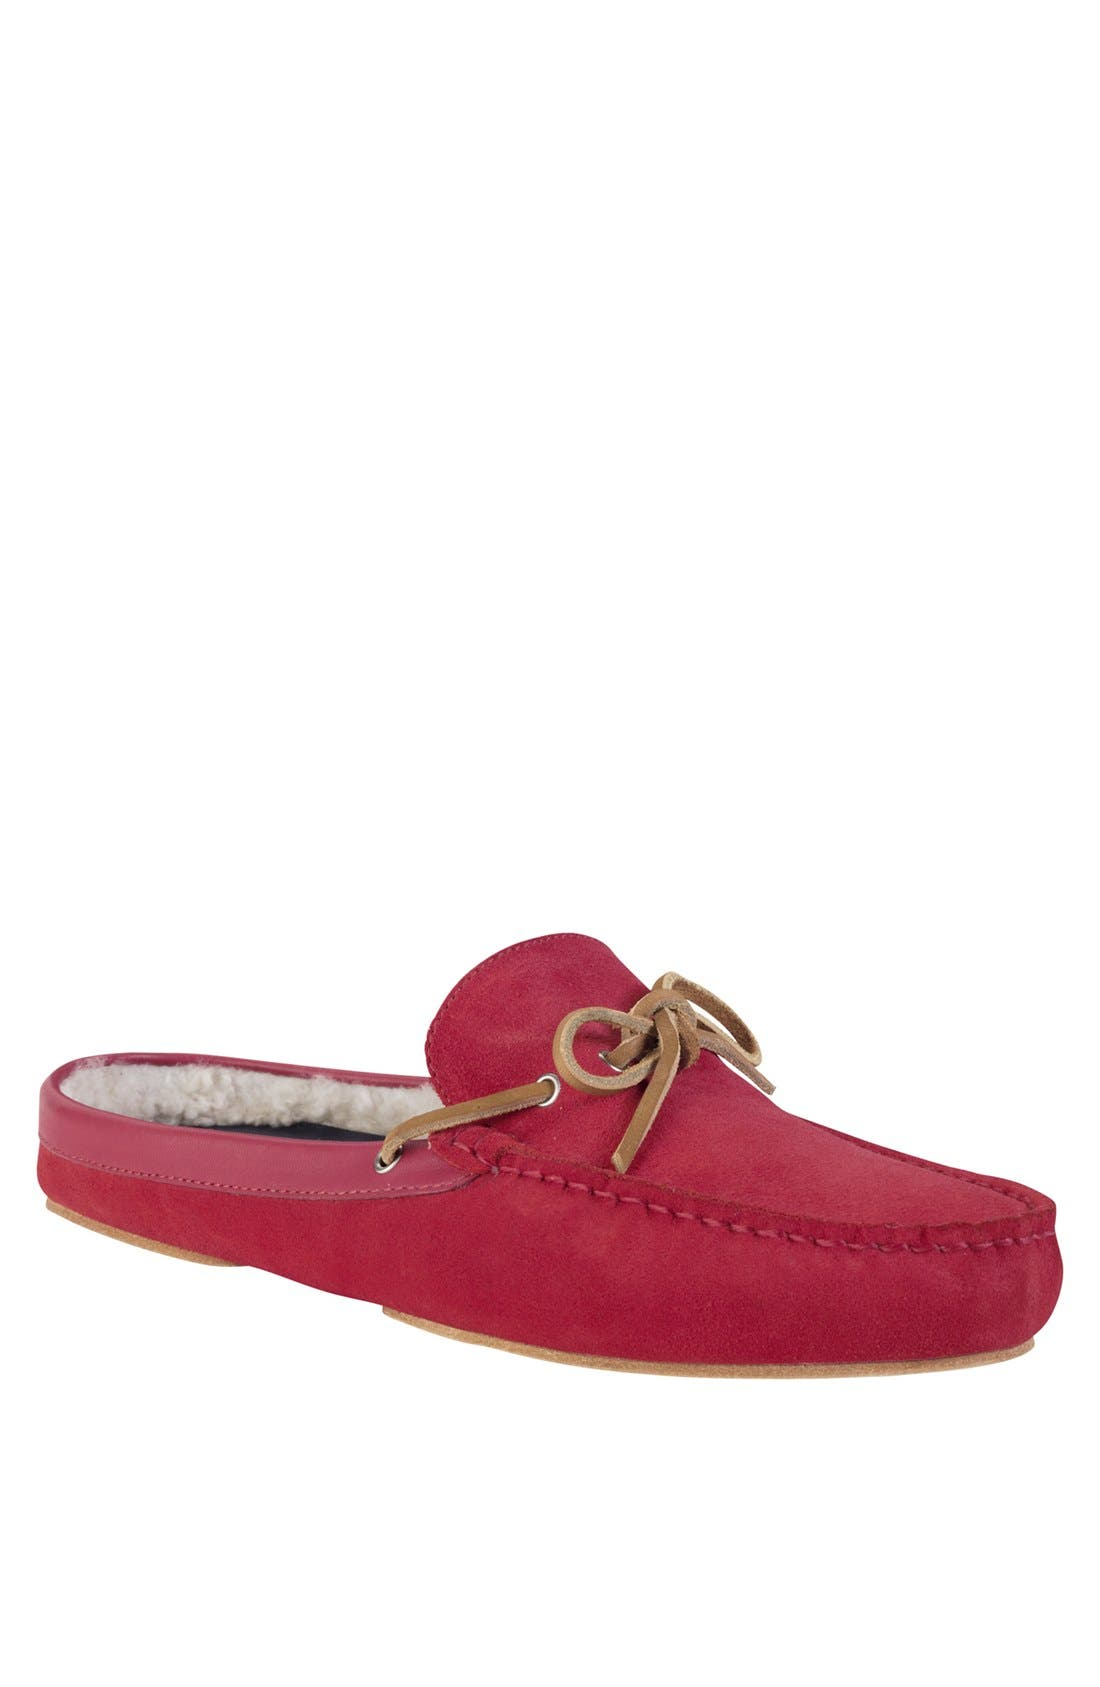 Alternate Image 1 Selected - Cole Haan 'Grant' Slipper